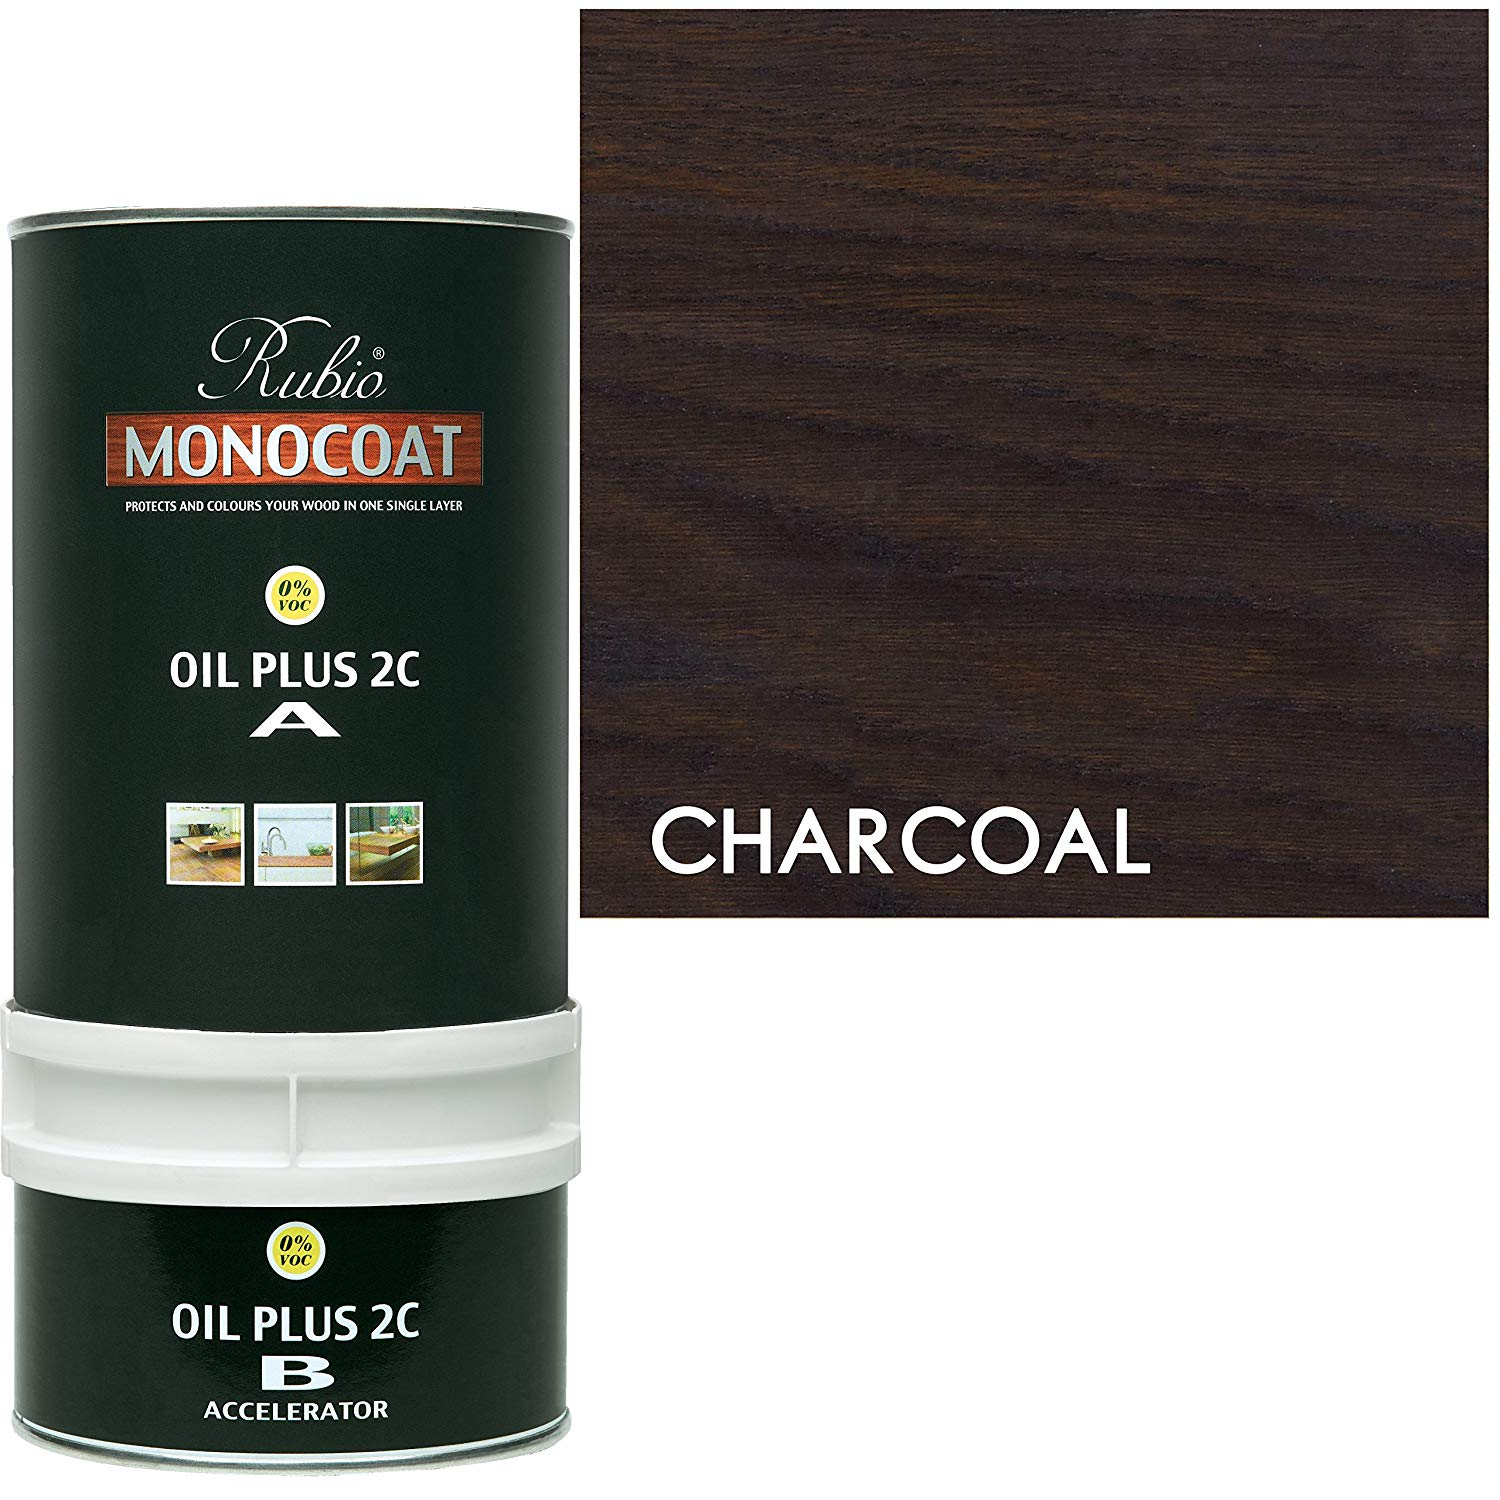 Rubio Monocoat Oil Plus 2C - Charcoal